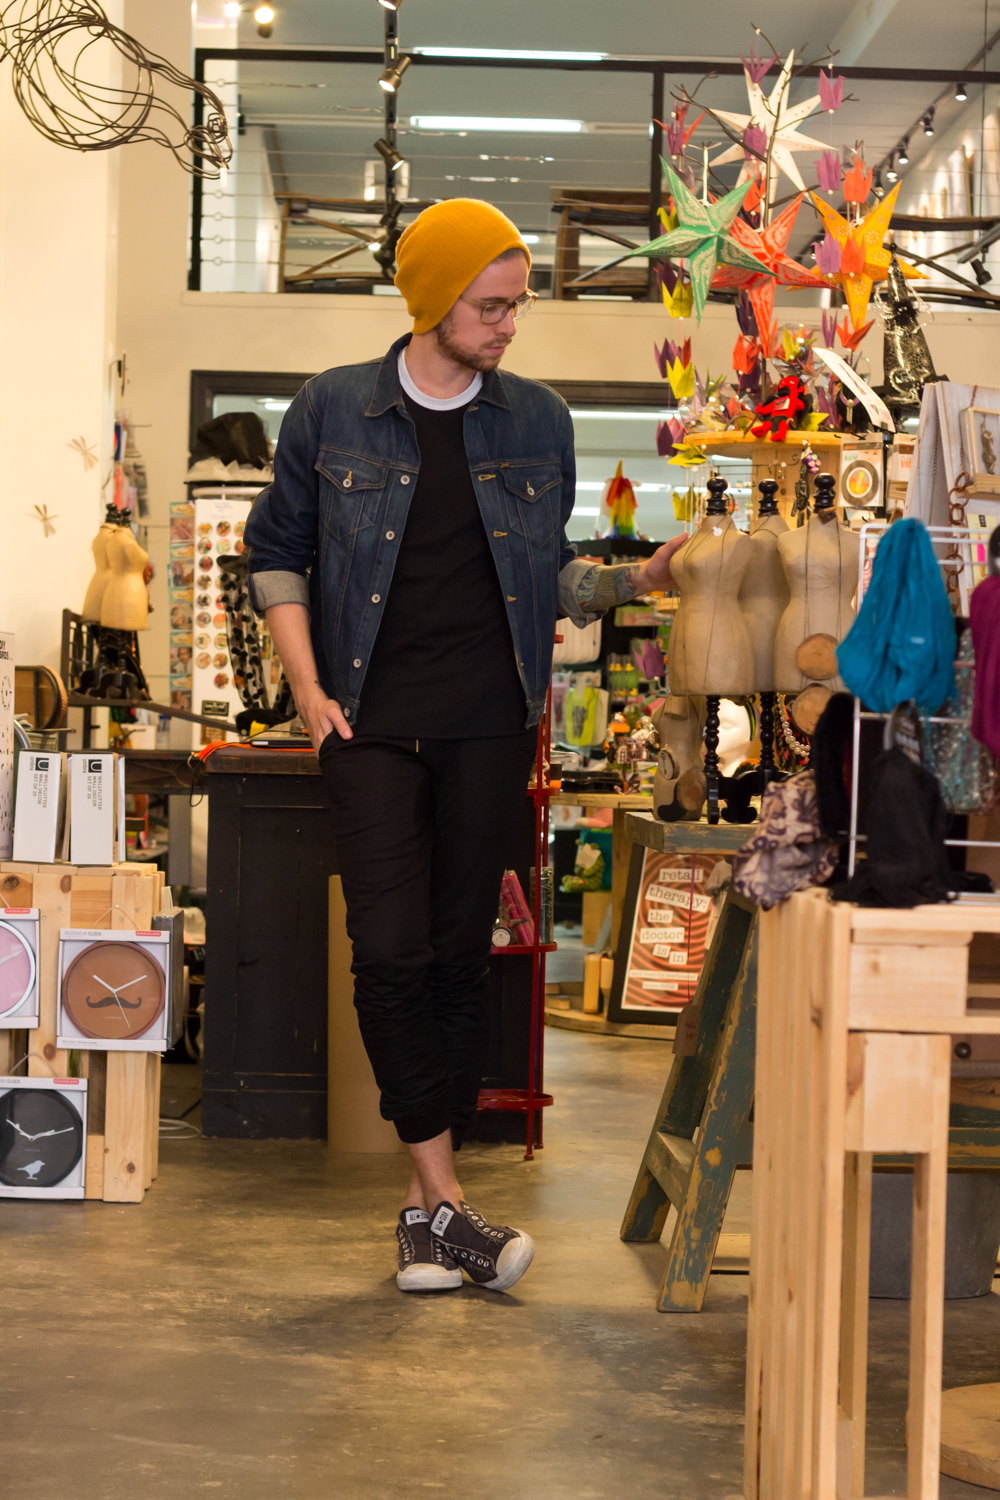 The Kentucky Gent, a Louisville, Kentucky blogger, in Forever 21 Beanie, Big Star Denim Jacket, American Apparel Baseball Tee, Zanerobe Mesh Joggers, and Converse Chuck Taylors at Regalo on South Fourth Street.